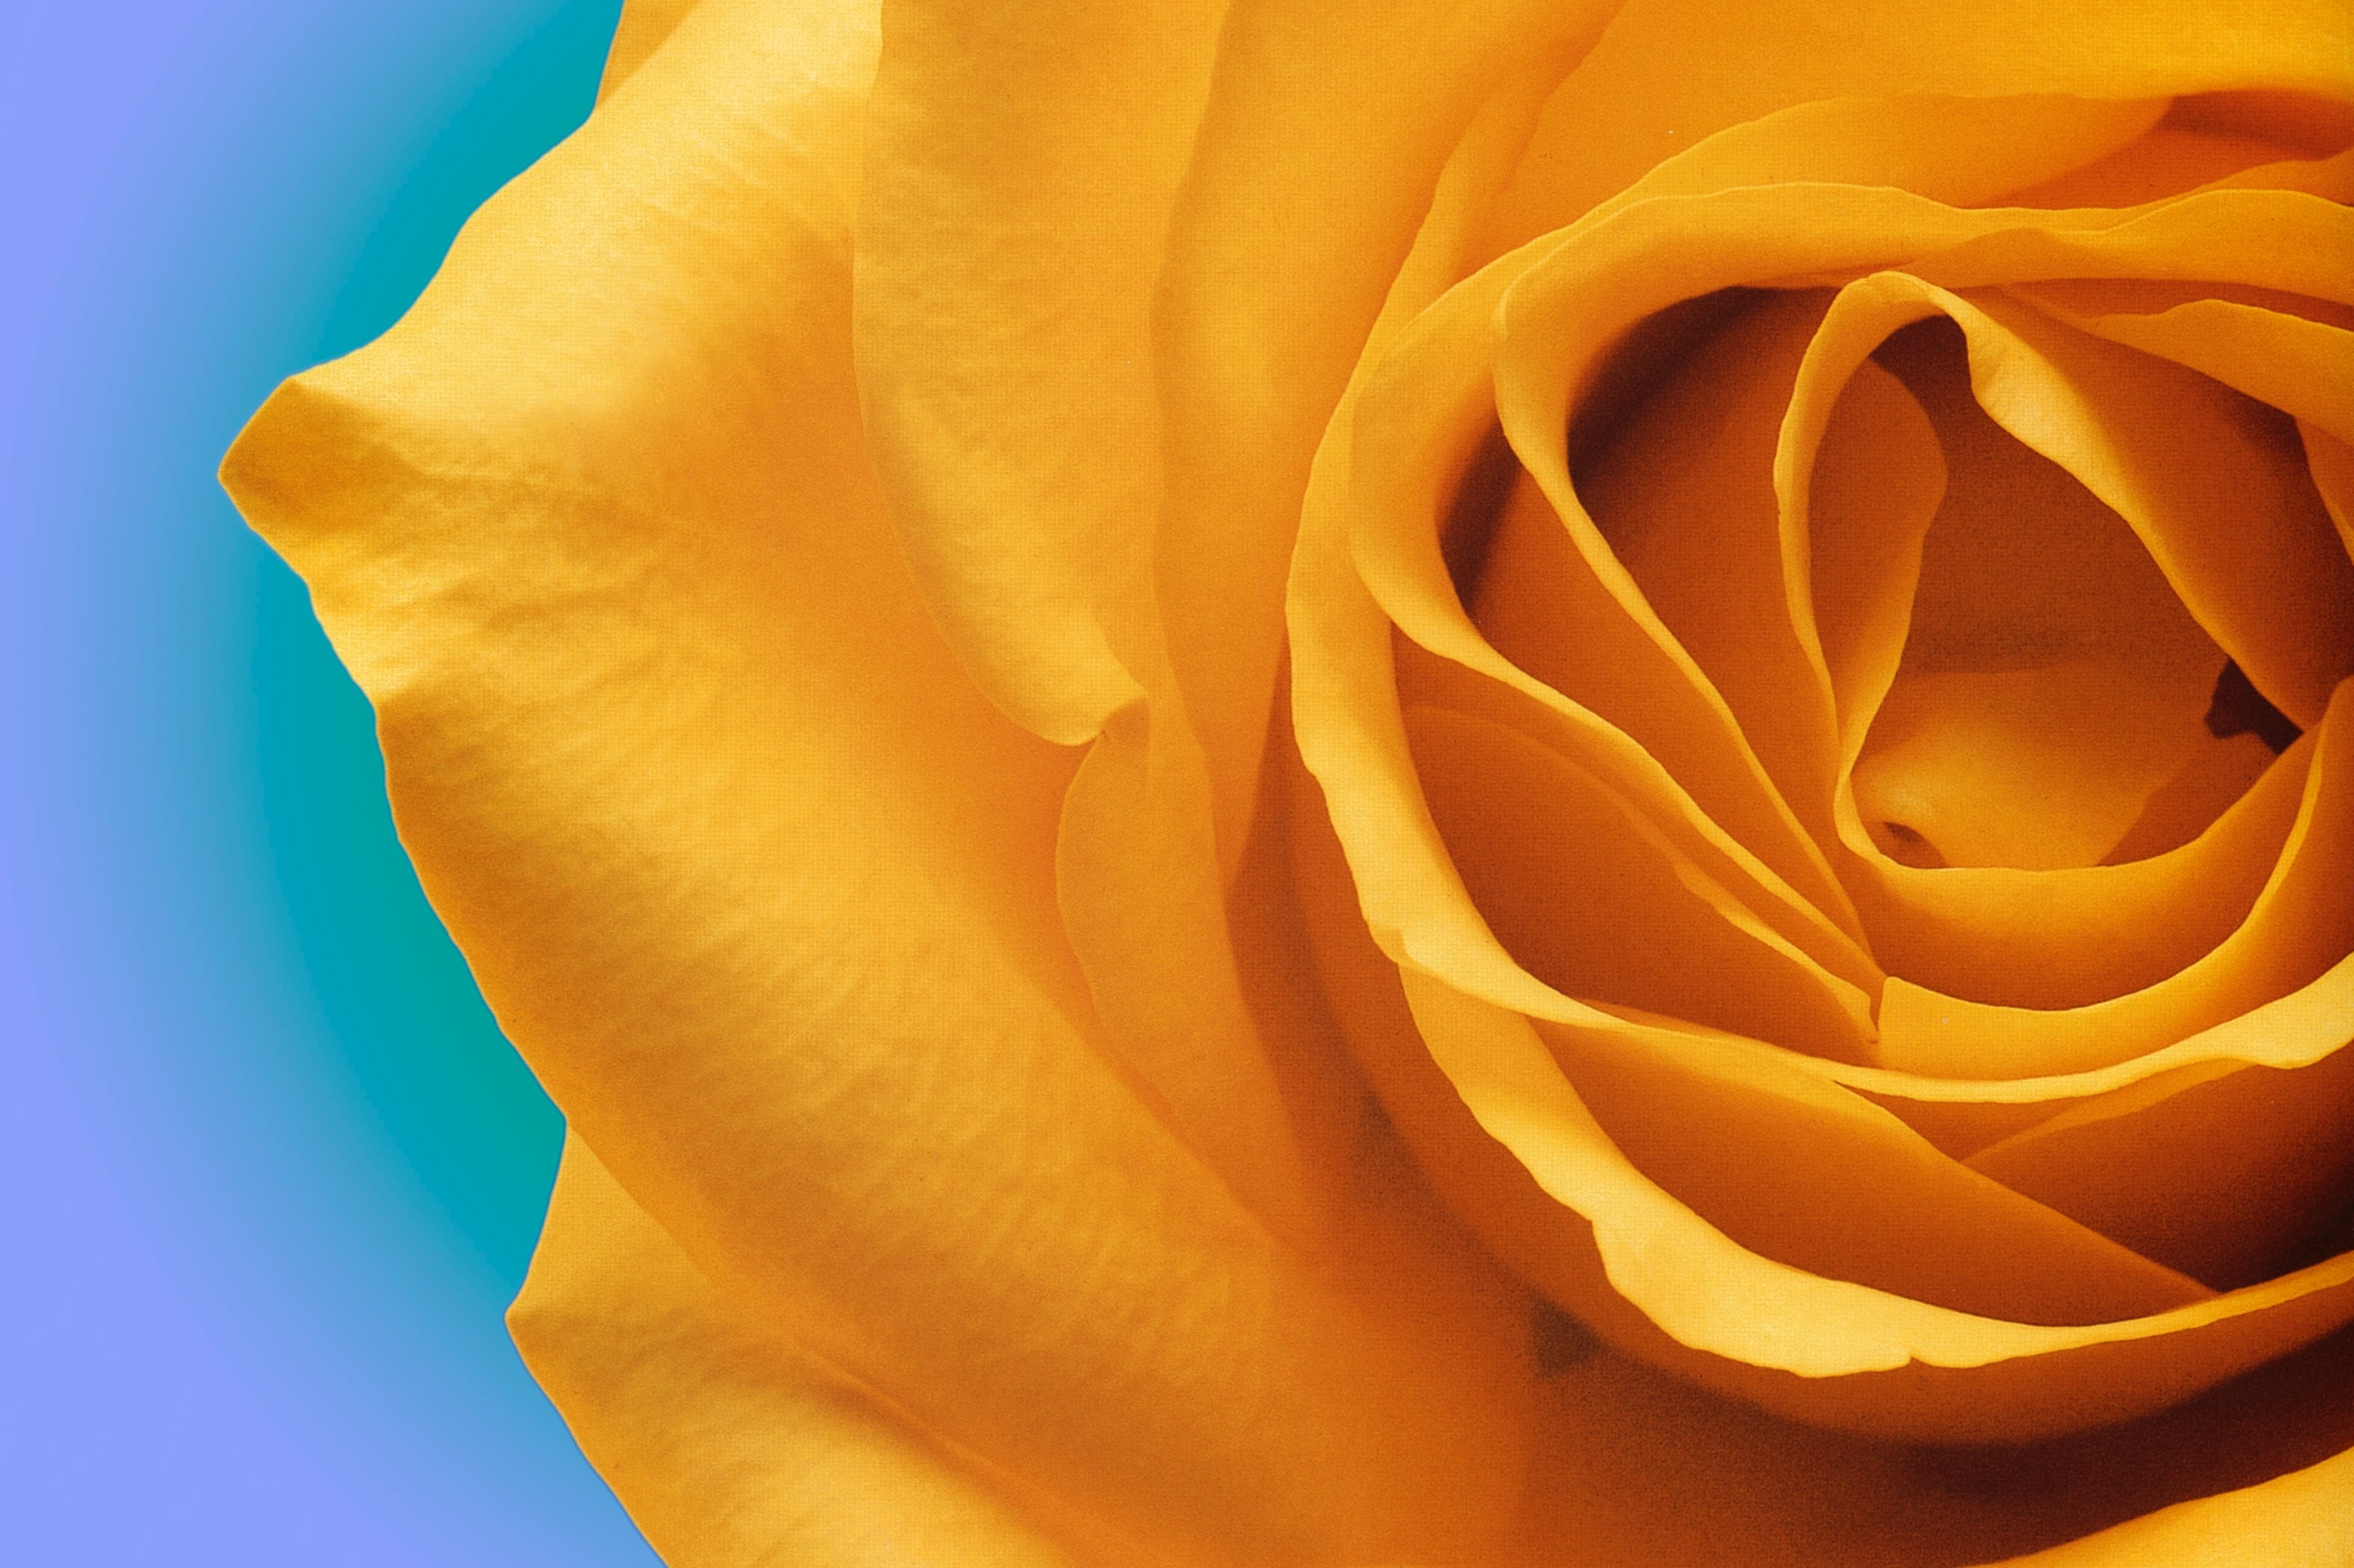 Women's Suffrage Yellow Rose